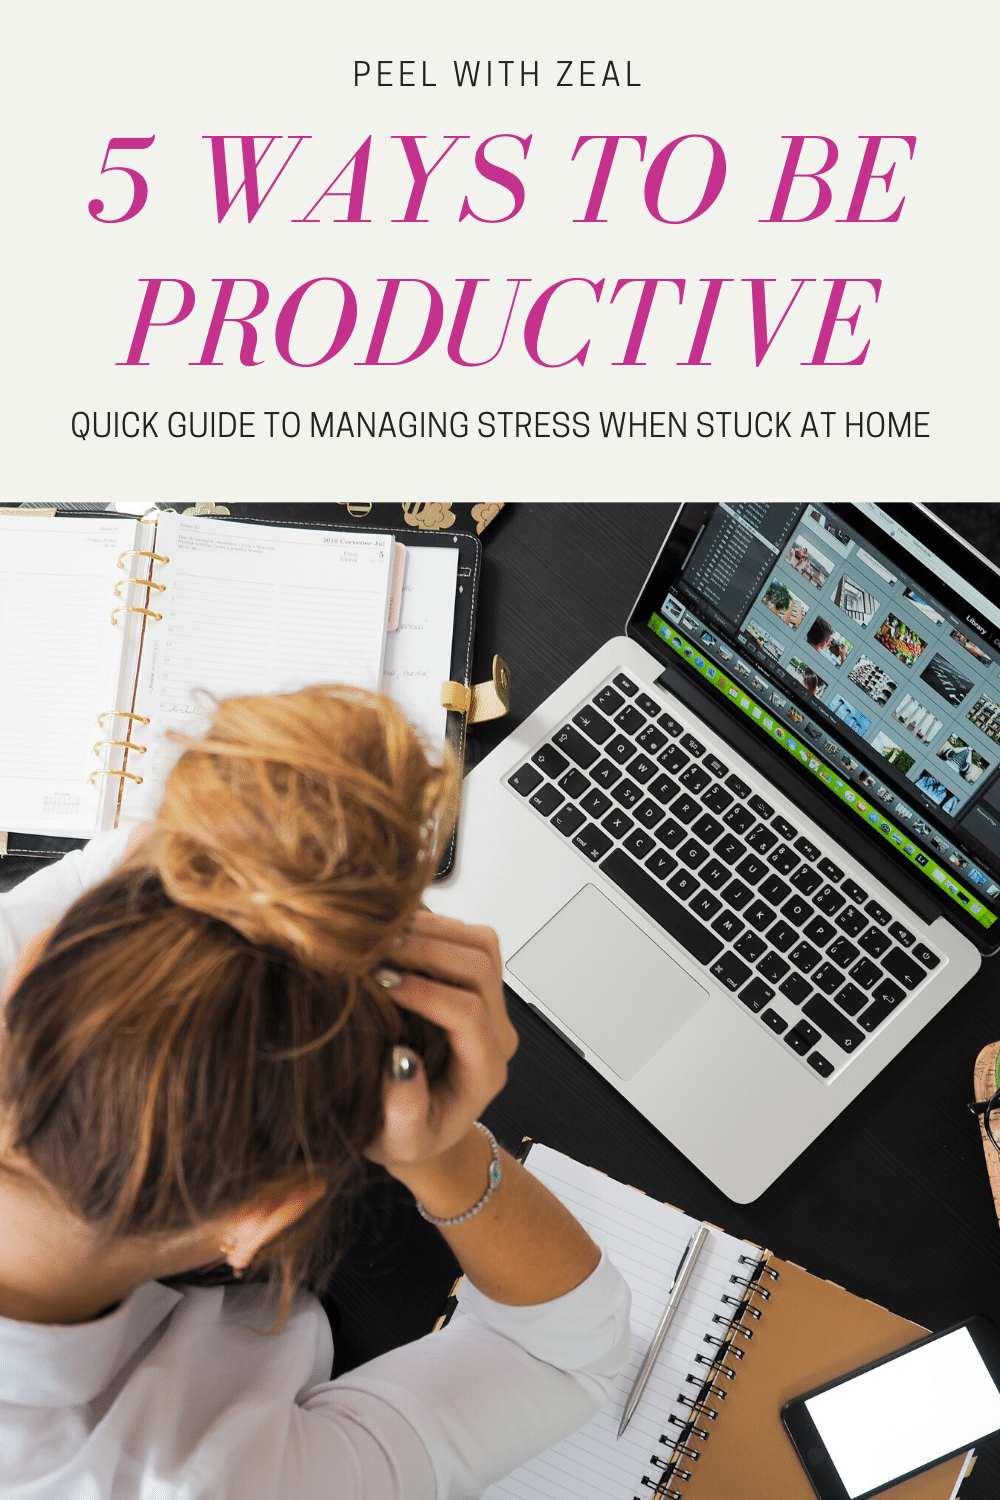 Five quick and easy ways to reduce stress, improve your confidence when stuck at home due to unemployment or other factors. These daily healthy habits can be done quickly so you can focus. #mentalhealth #selfcare #howtomangestress #productivity #healthyhabits